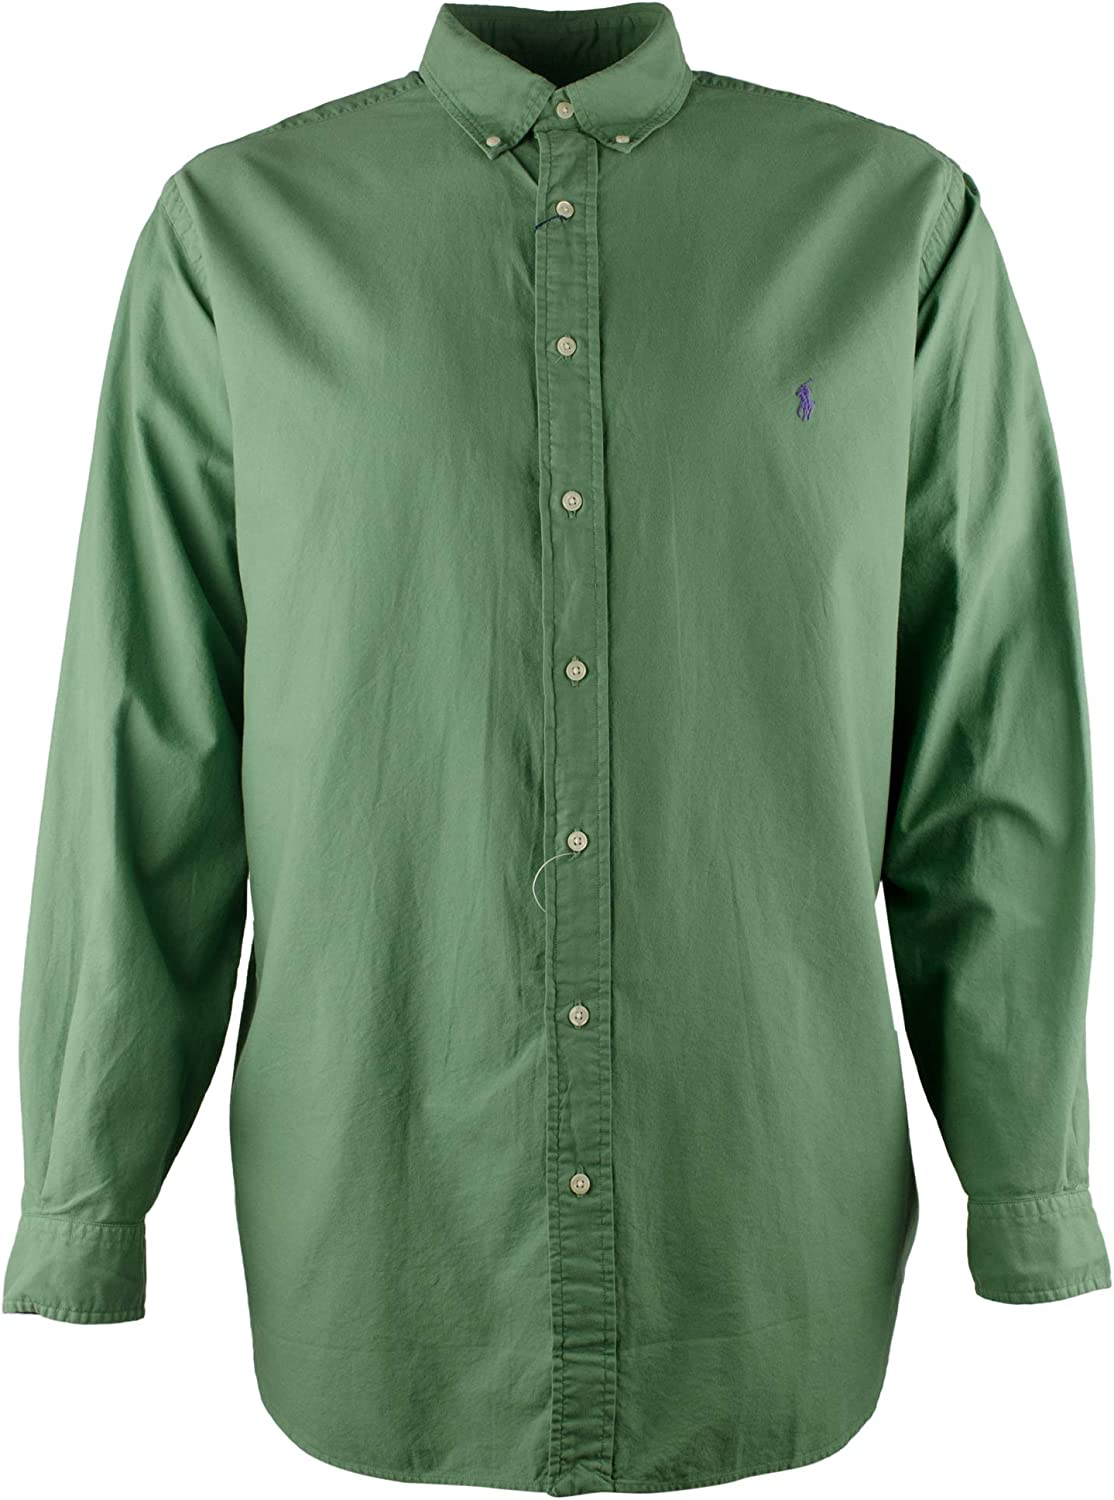 Polo Ralph Lauren Mens Big And Tall Buttondown Shirt Long Sleeve Collared Top